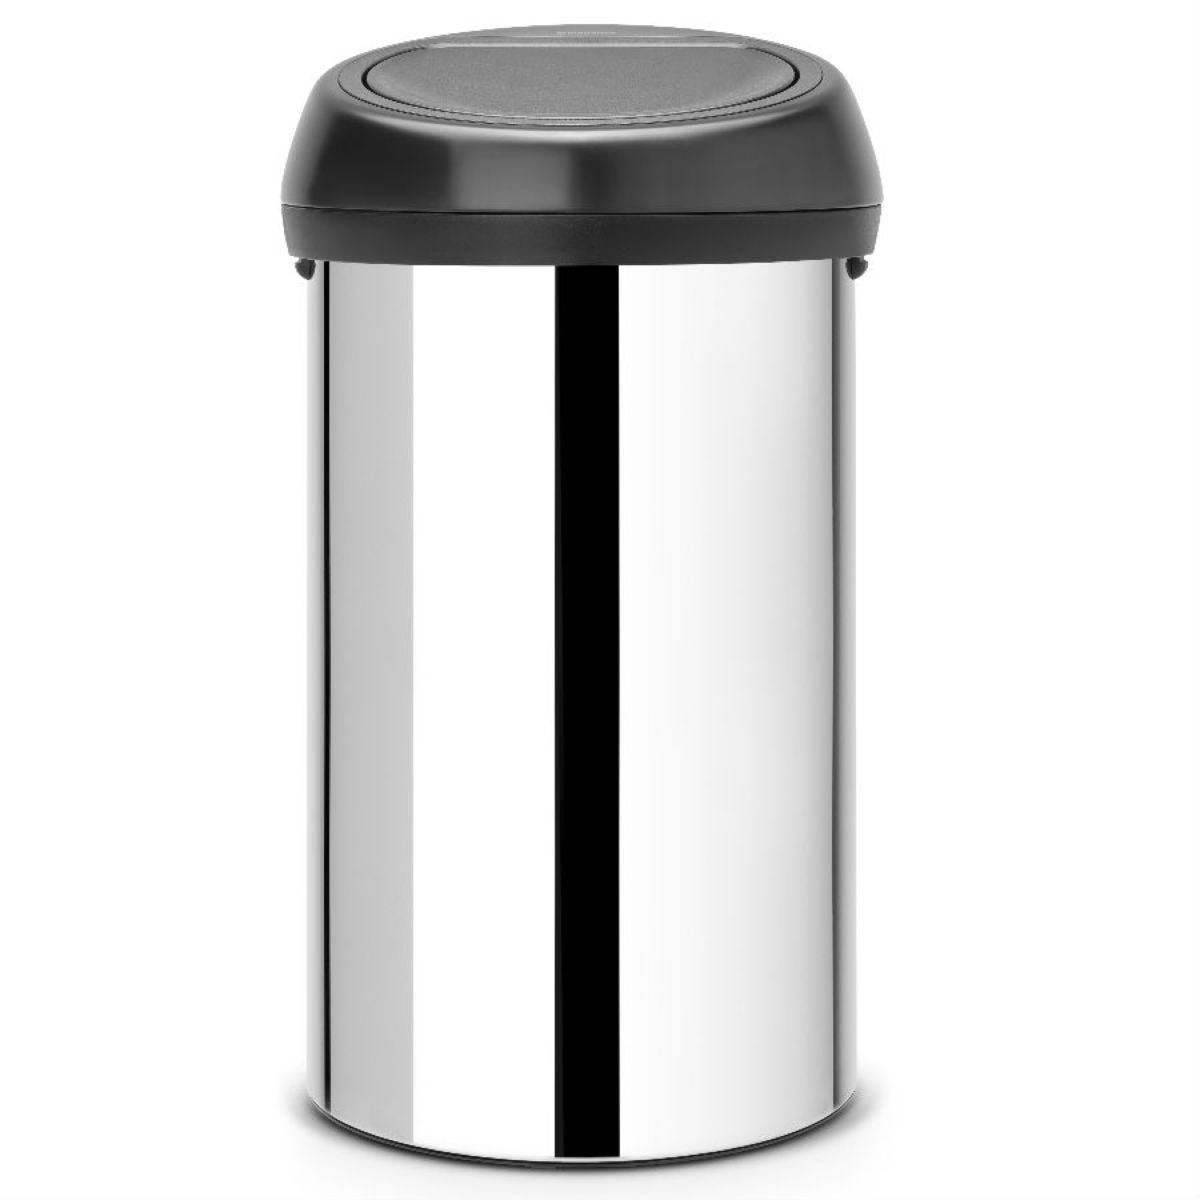 Brabantia 60L Touch Bin - Brilliant Steel With Black Lid